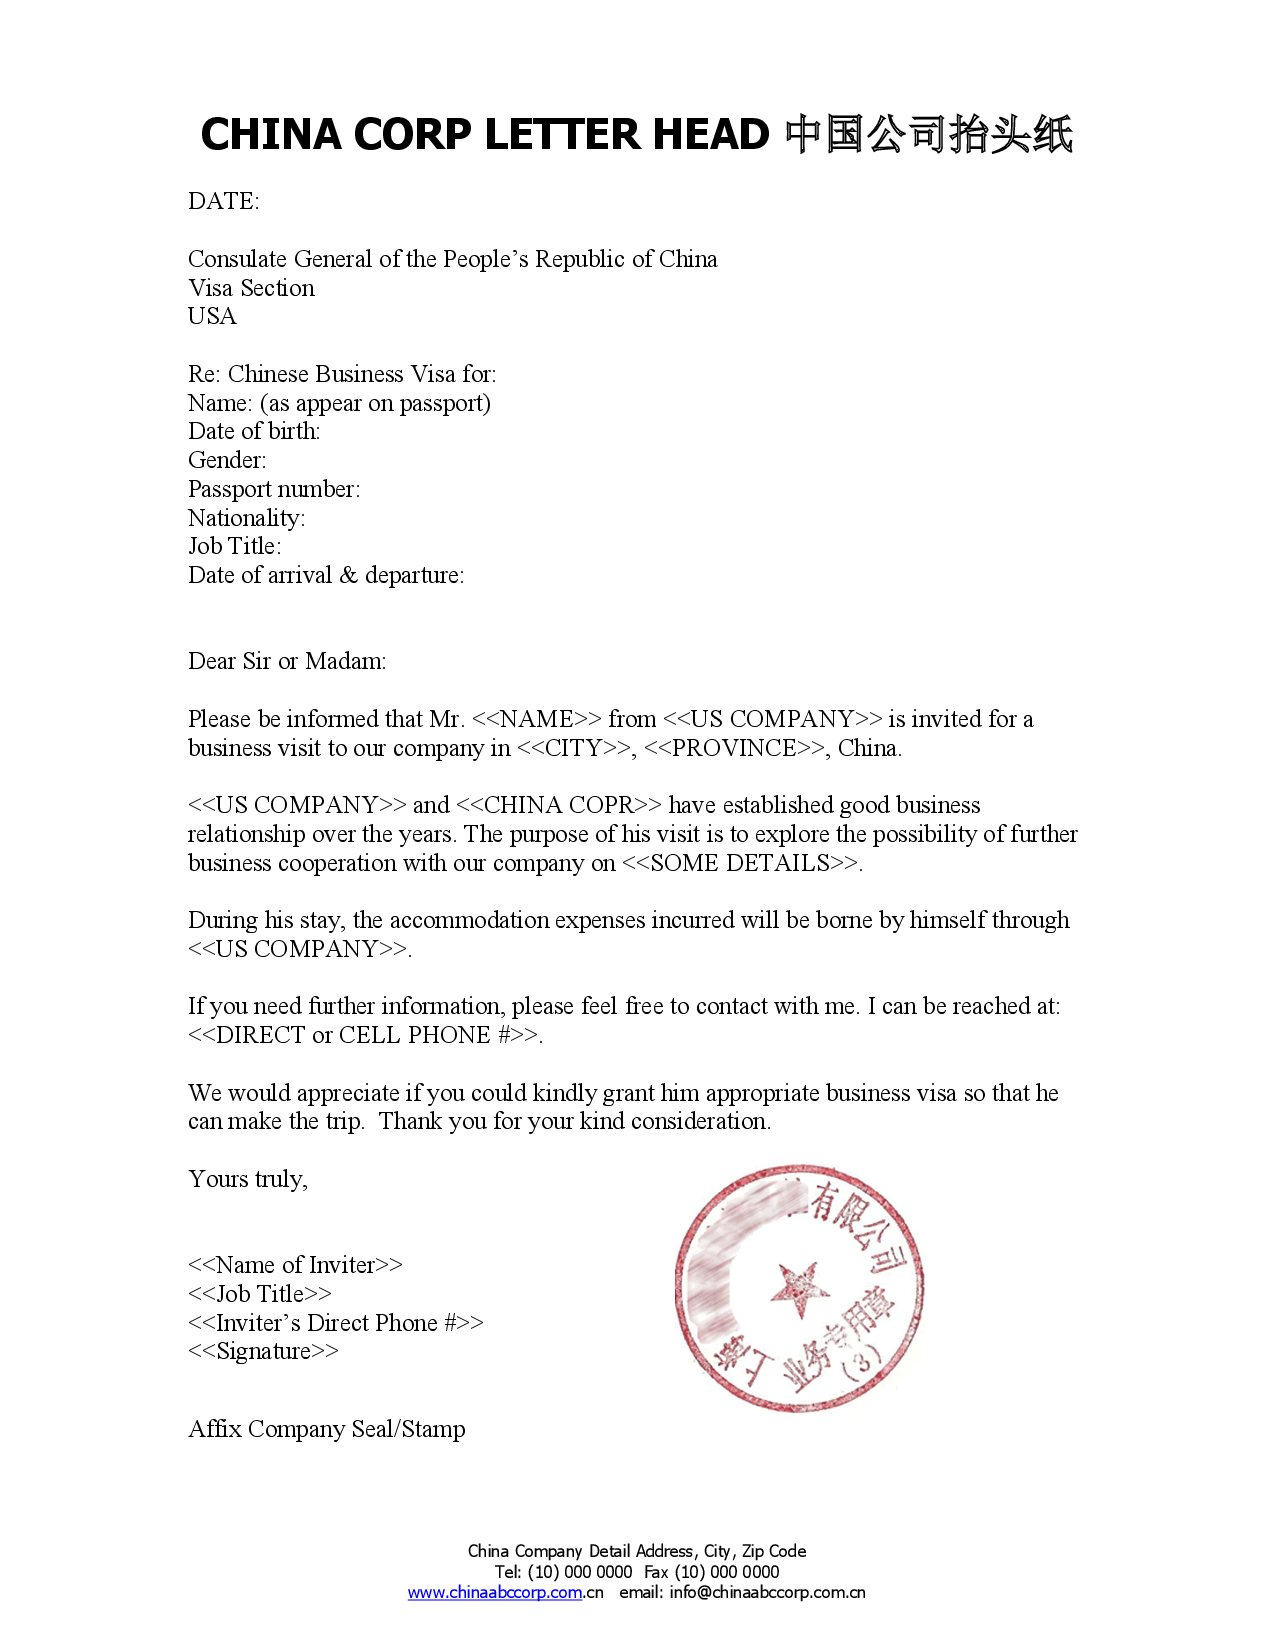 Format invitation letter for business visa to china lettervisa format invitation letter for business visa to china lettervisa invitation letter application letter sample altavistaventures Gallery